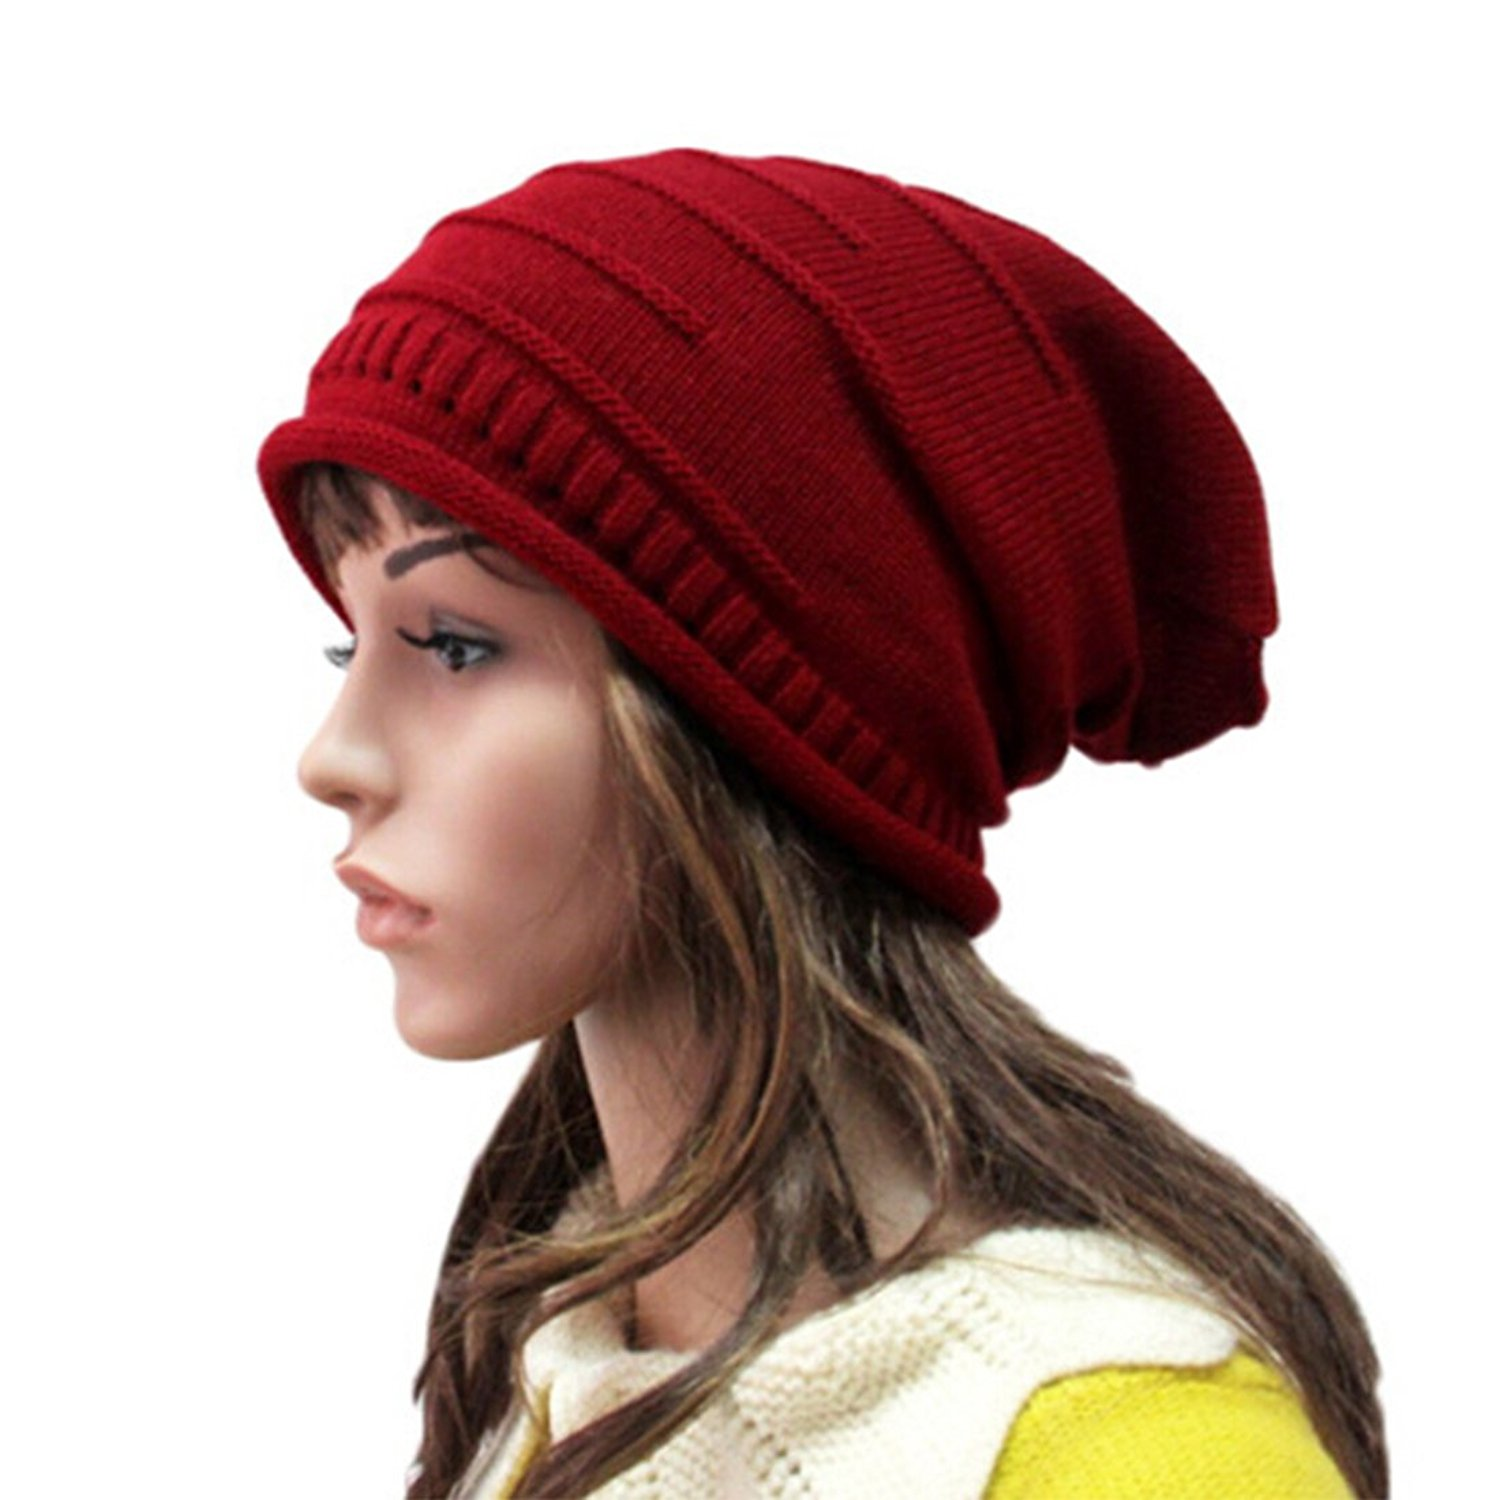 9a8ac557456 Get Quotations · Trendy Warm Chunky Soft Stretch Cable Knit Beanie Skully  Hats for Women   Men